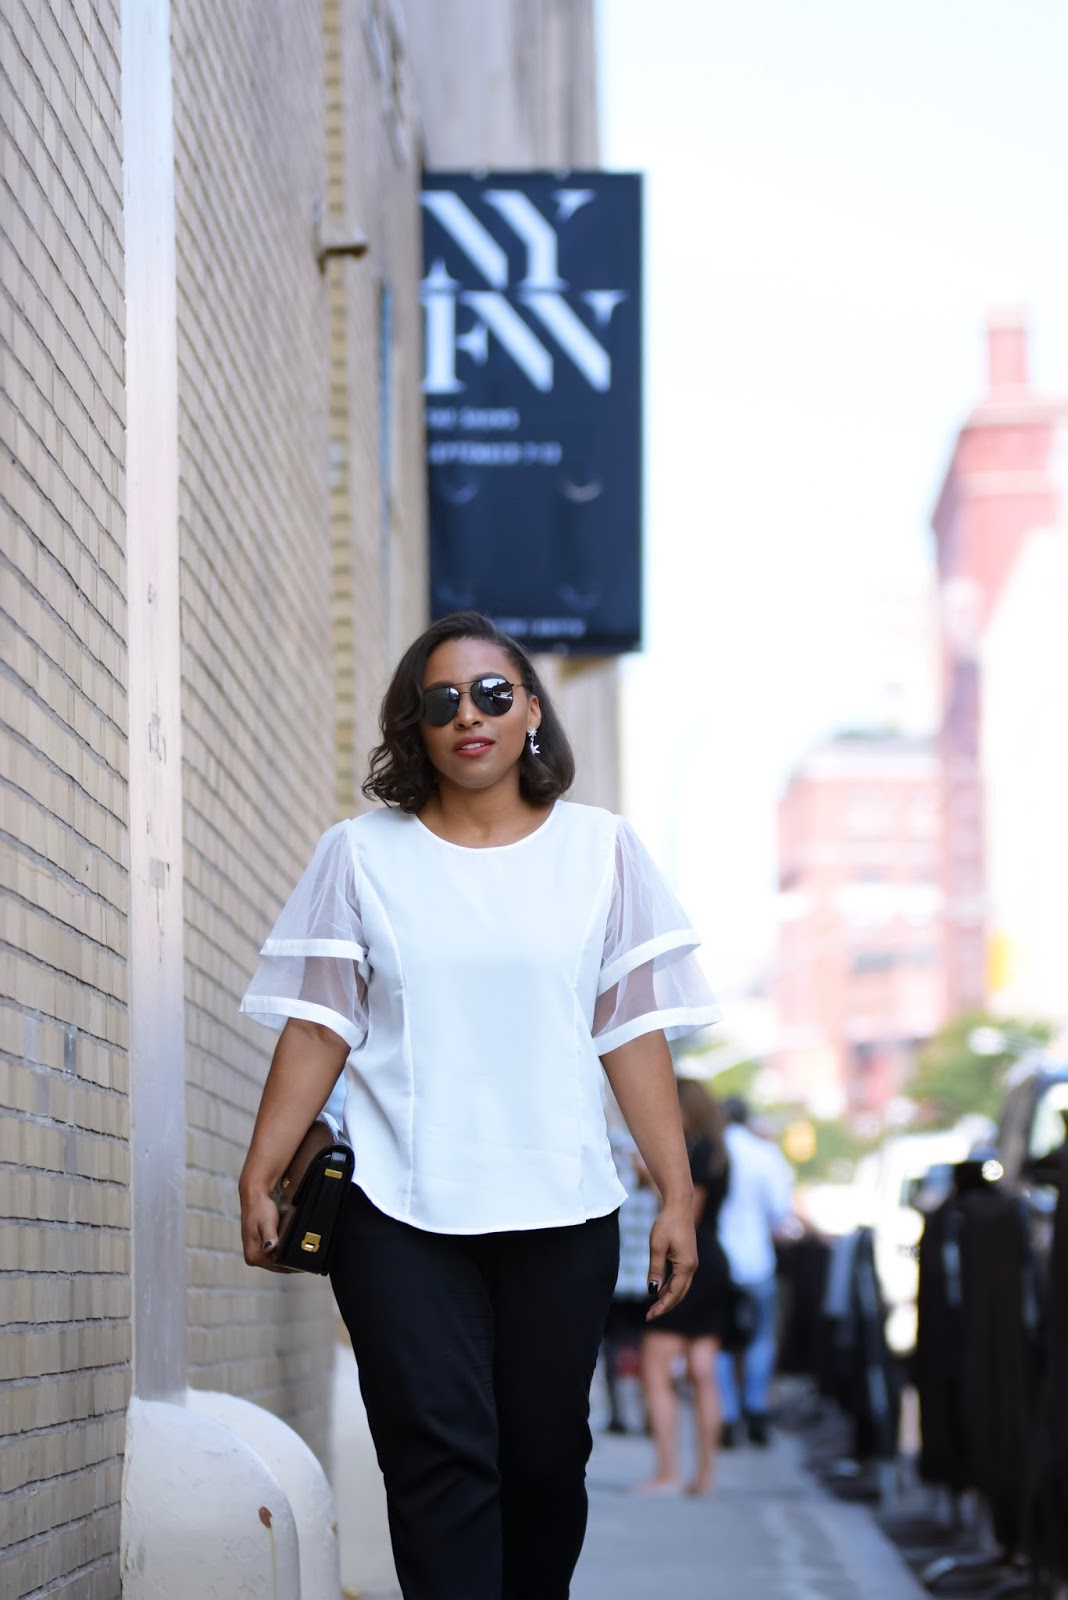 New york fashion week, nyfw, spring summer 2018, nyfw 2018, runway, John Paul Ataker, Mimi Prober, nyfw streetstyle, dc bloggers, fashion trends